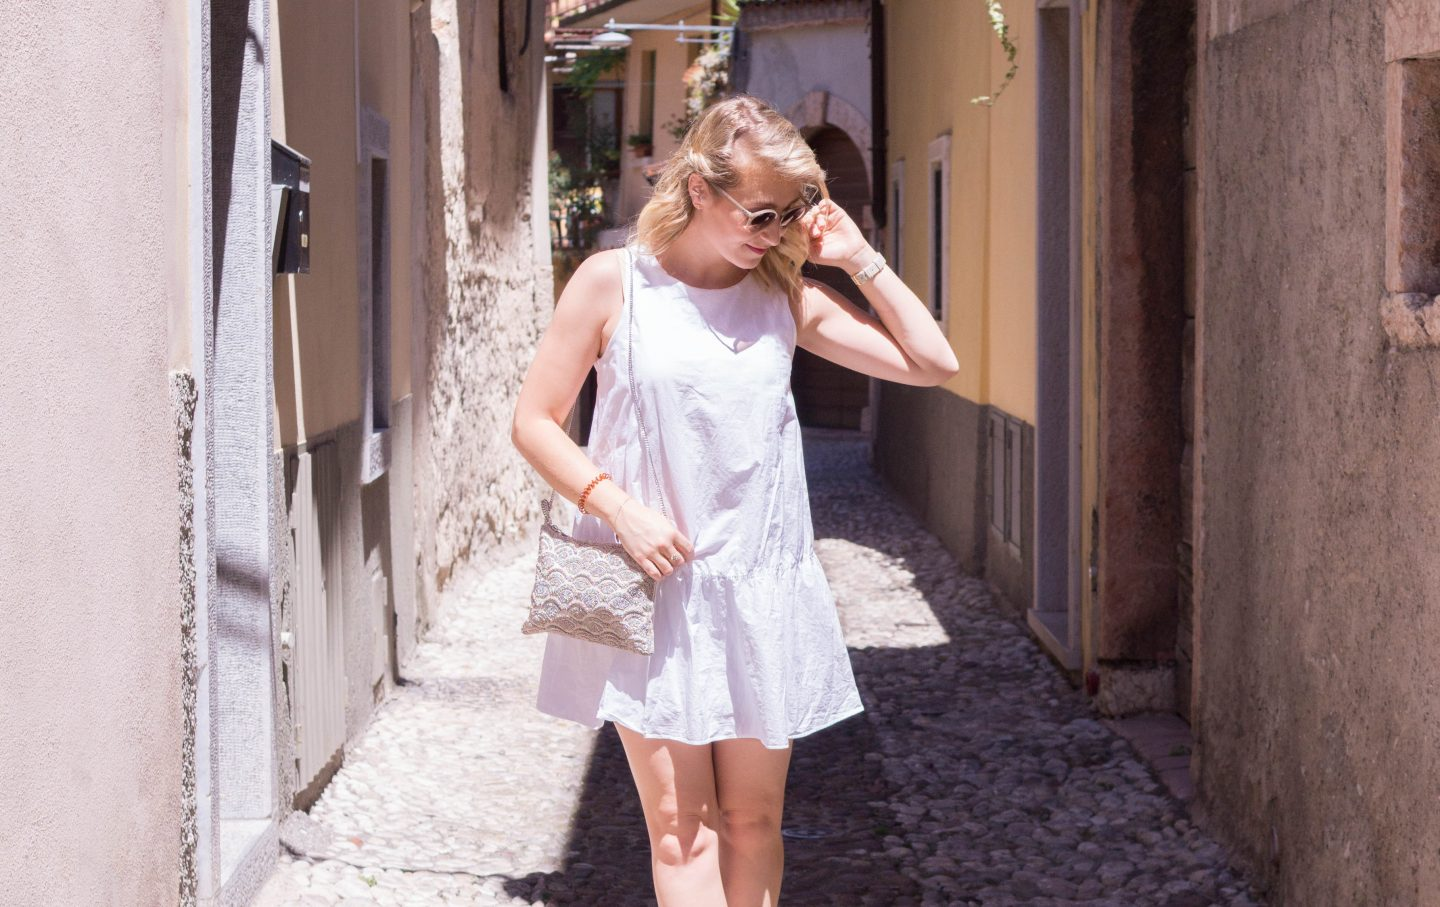 White Ruffle Dress & Sparkly Bag in Malcesine, Italy